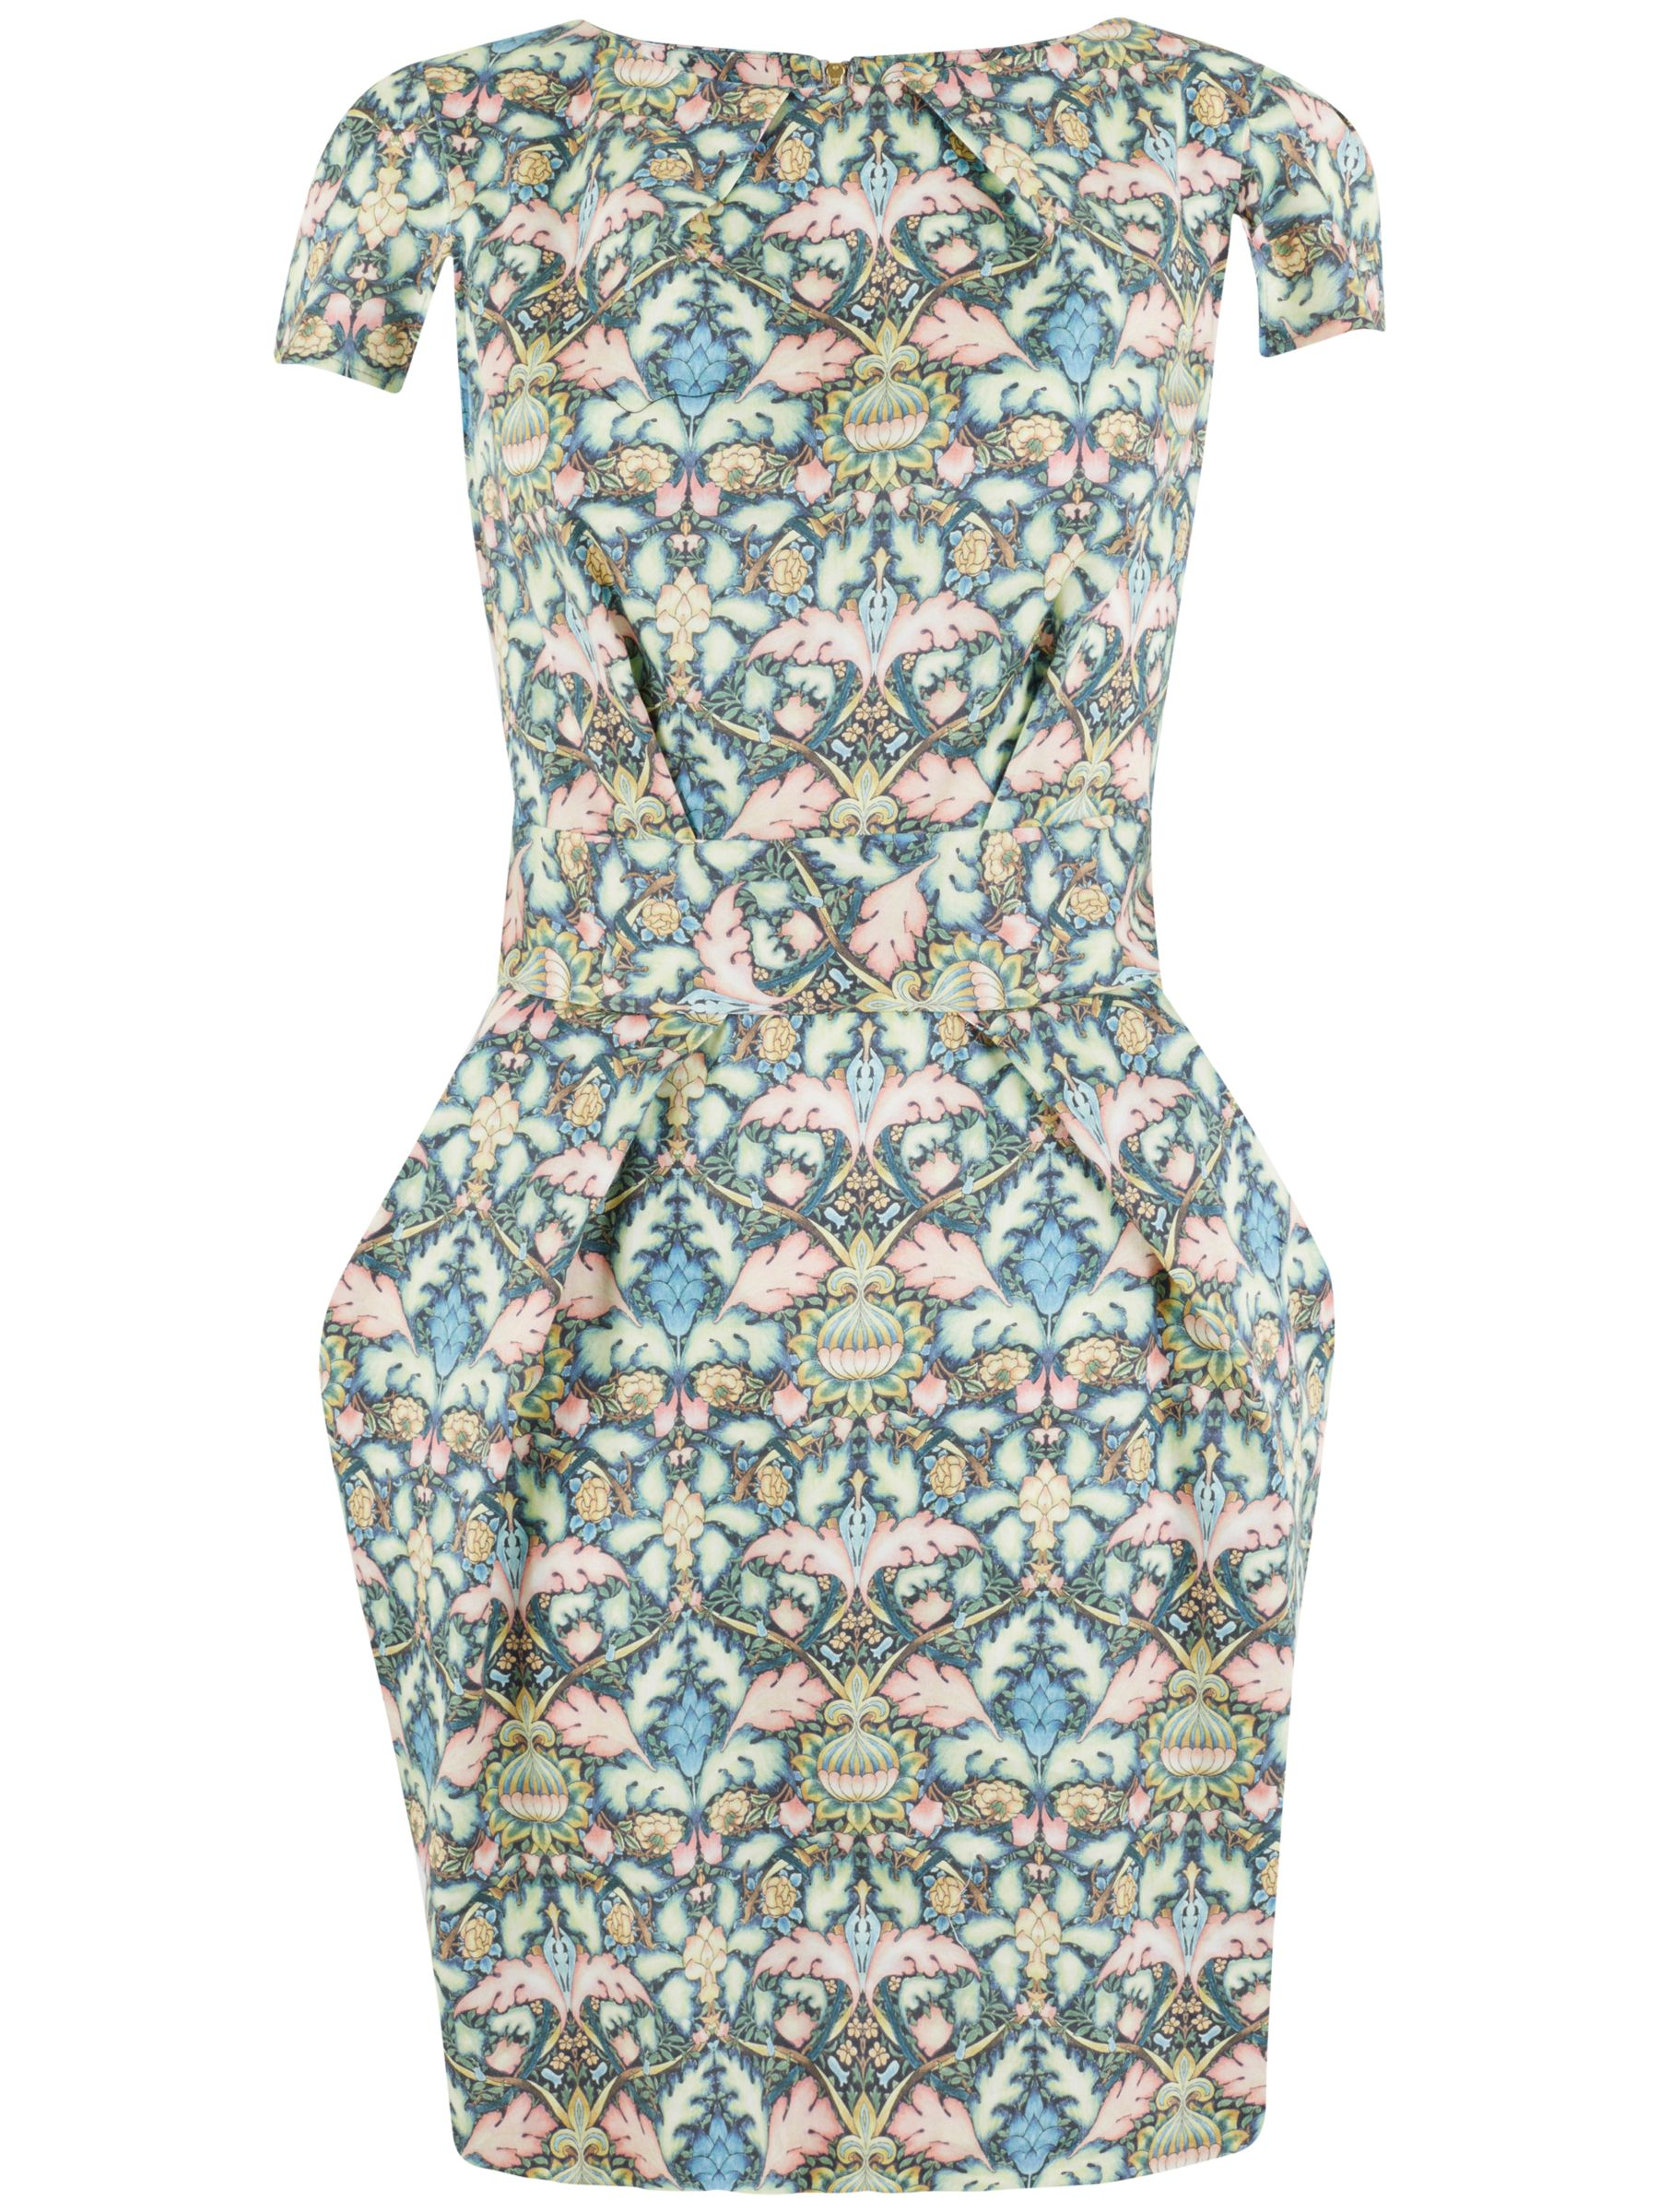 Closet Closet Mirror Print Tulip Dress, Multi